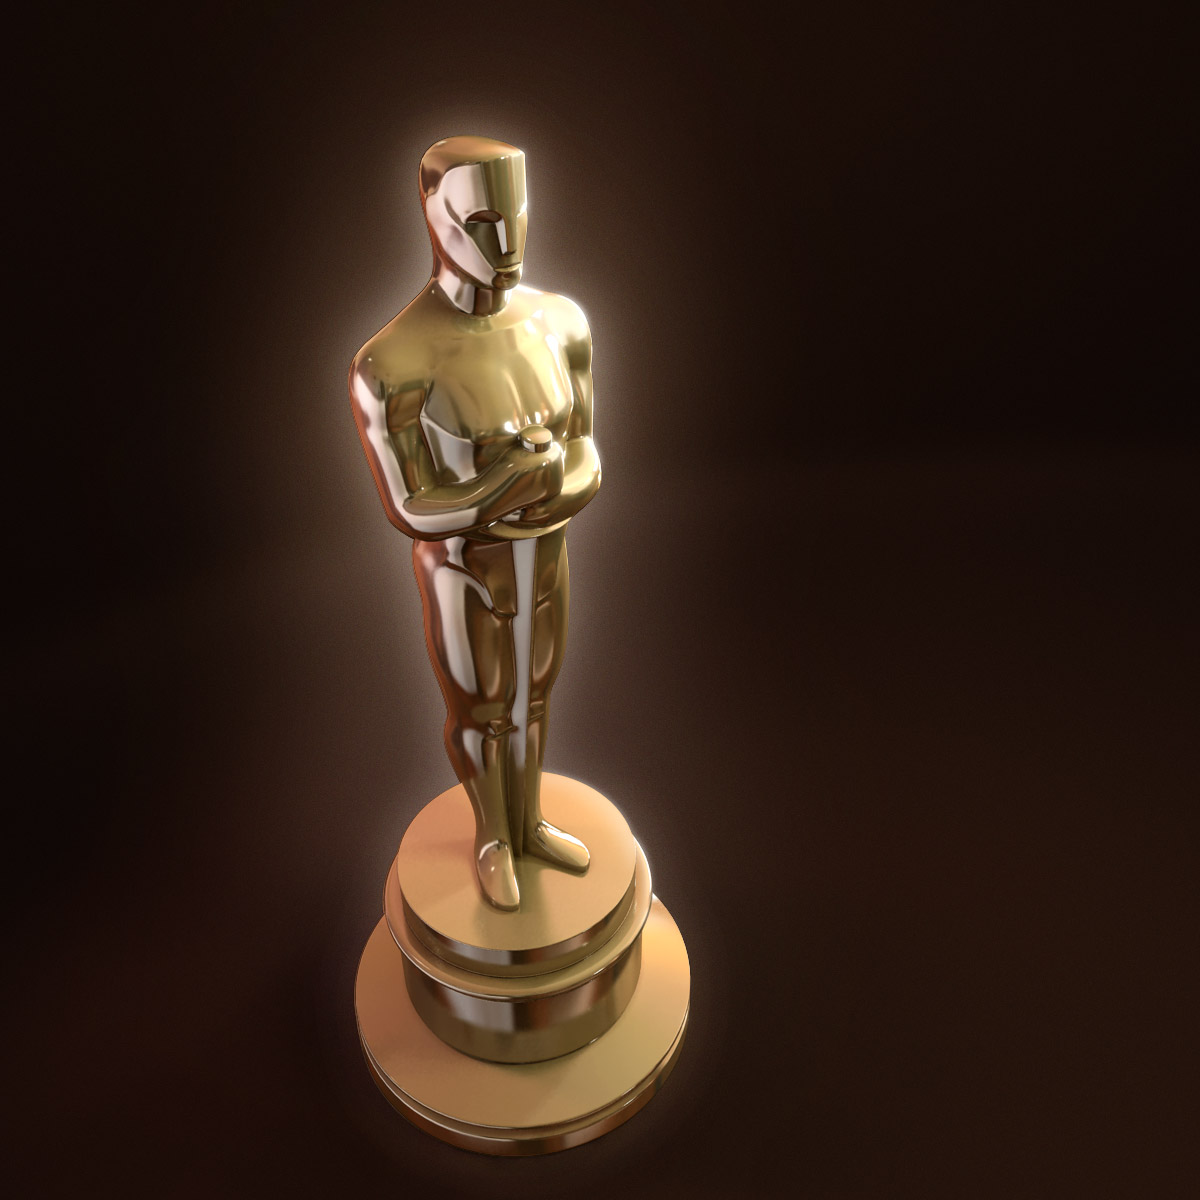 Comprised clipart academy awards for free download and use images in.